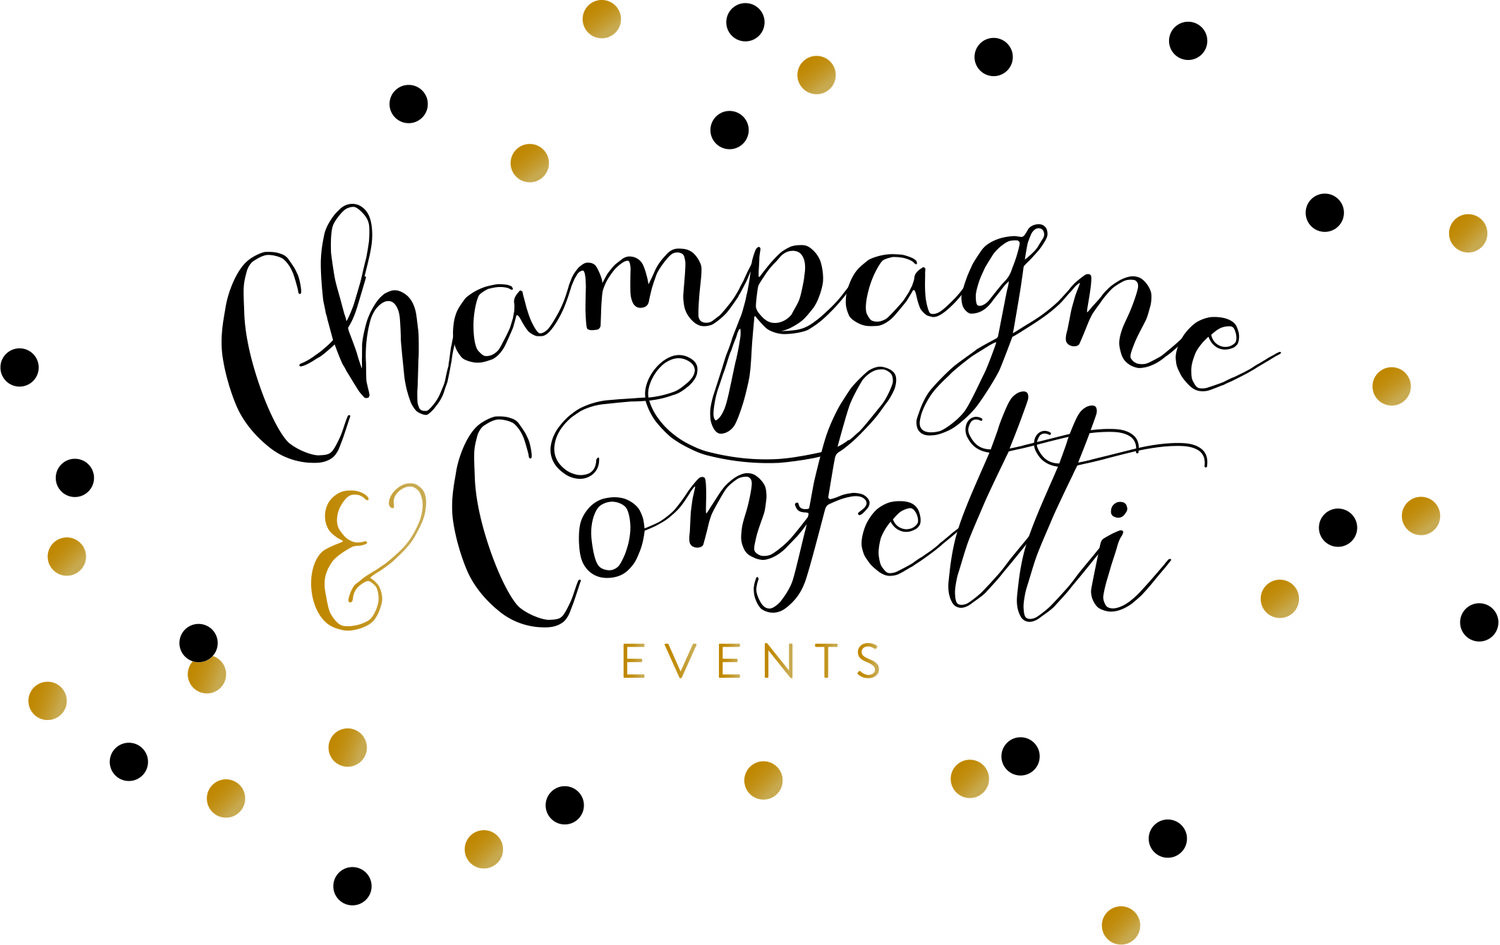 Champagne & Confetti Events